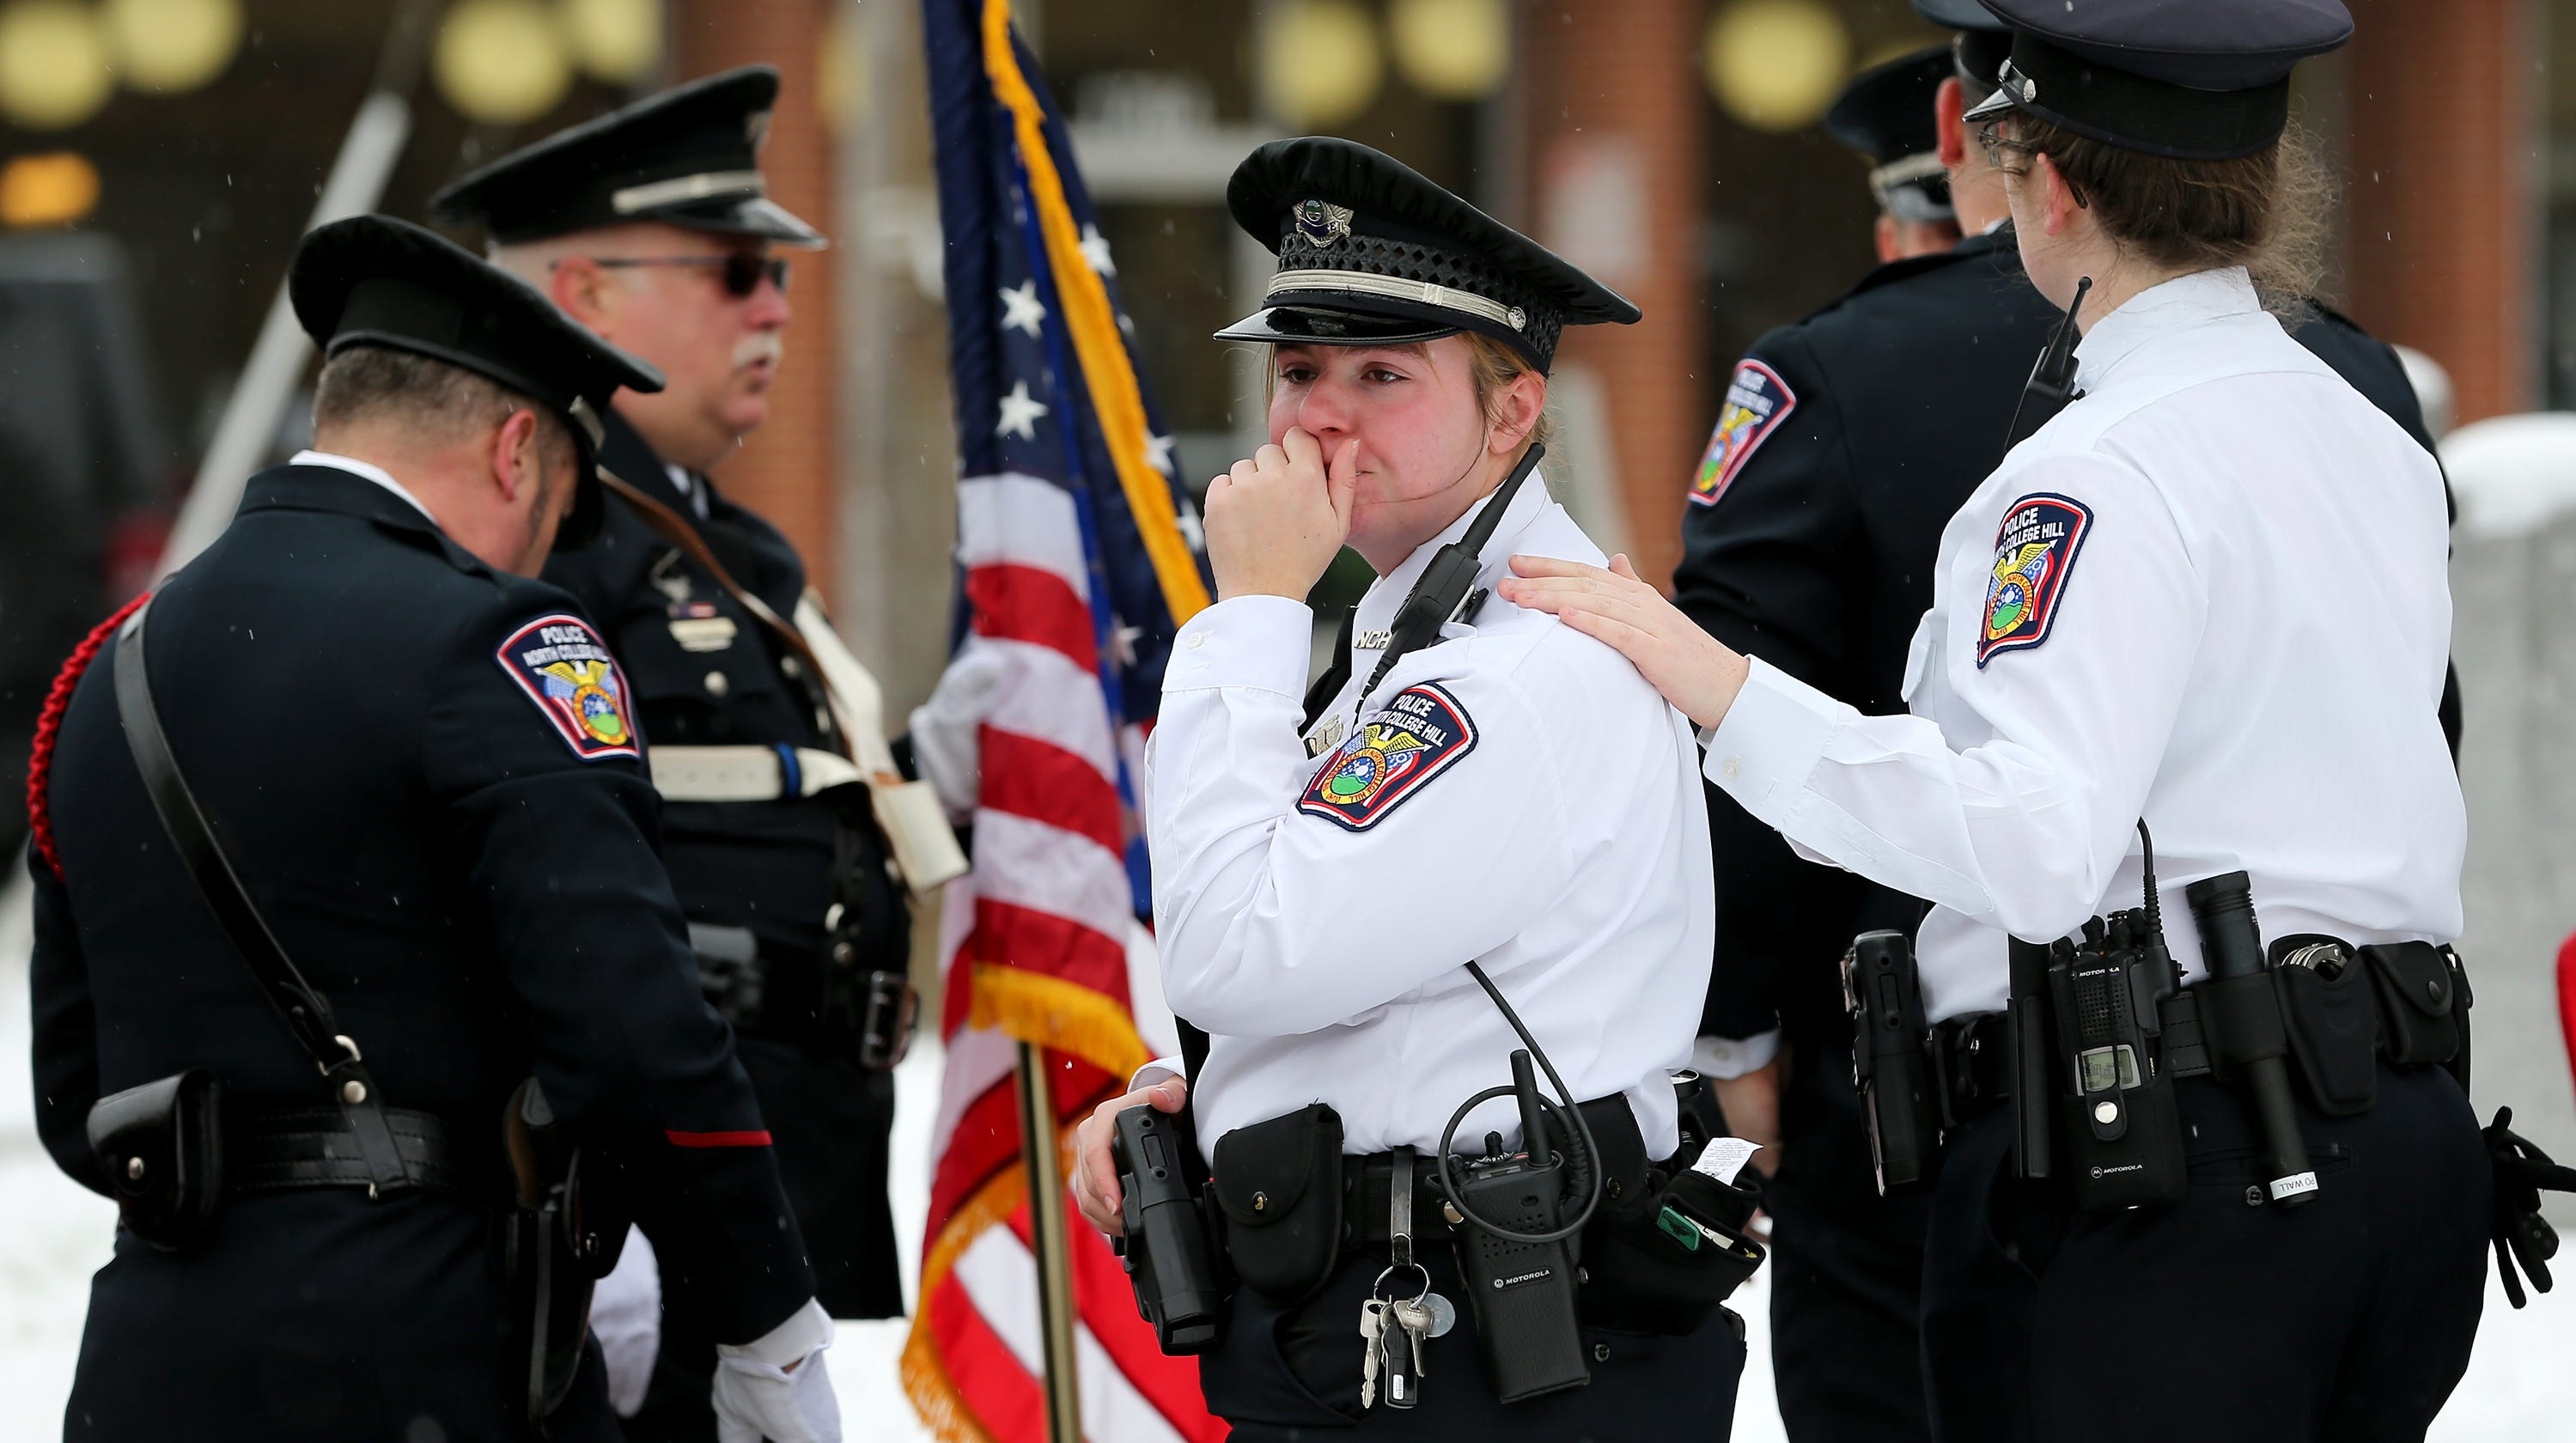 Dale Woods Funeral And Burial For Colerain Police Officer